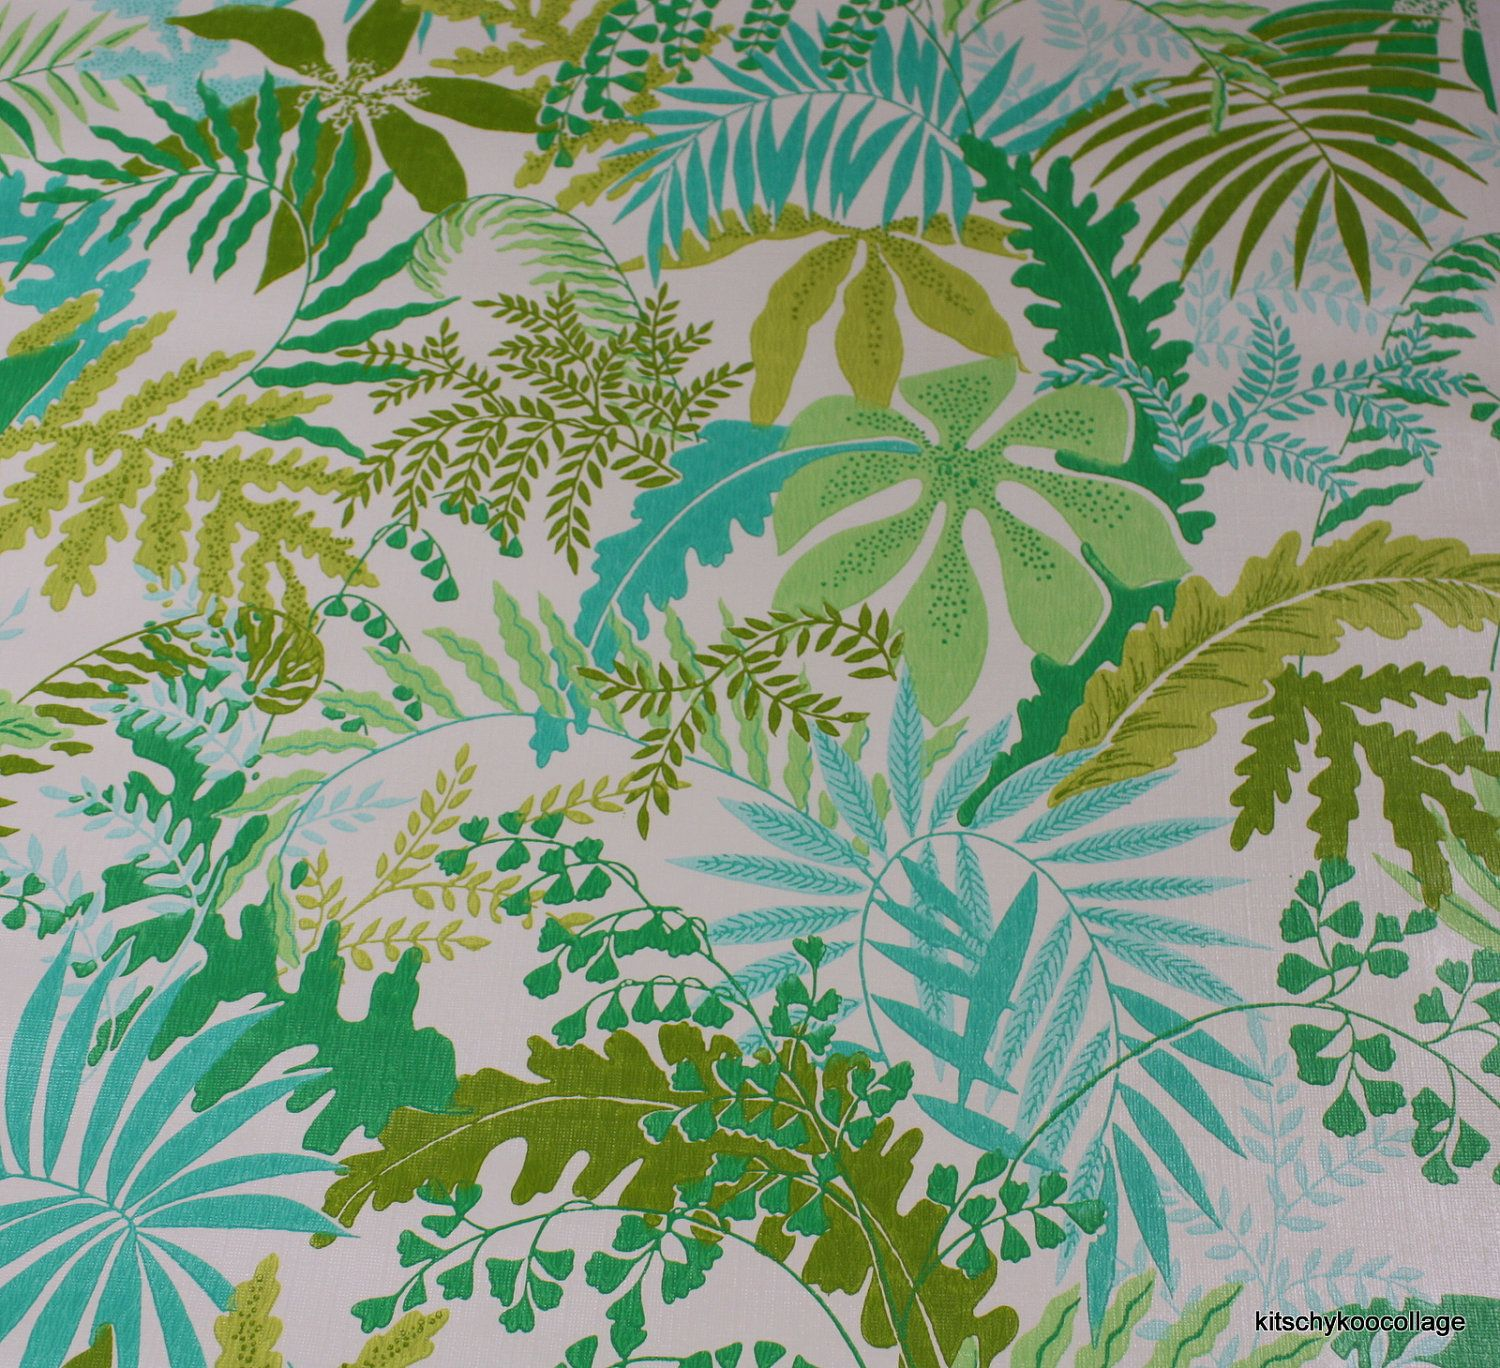 1970S Vintage Wallpaper Jungle Ferns In Aqua And Shades Of